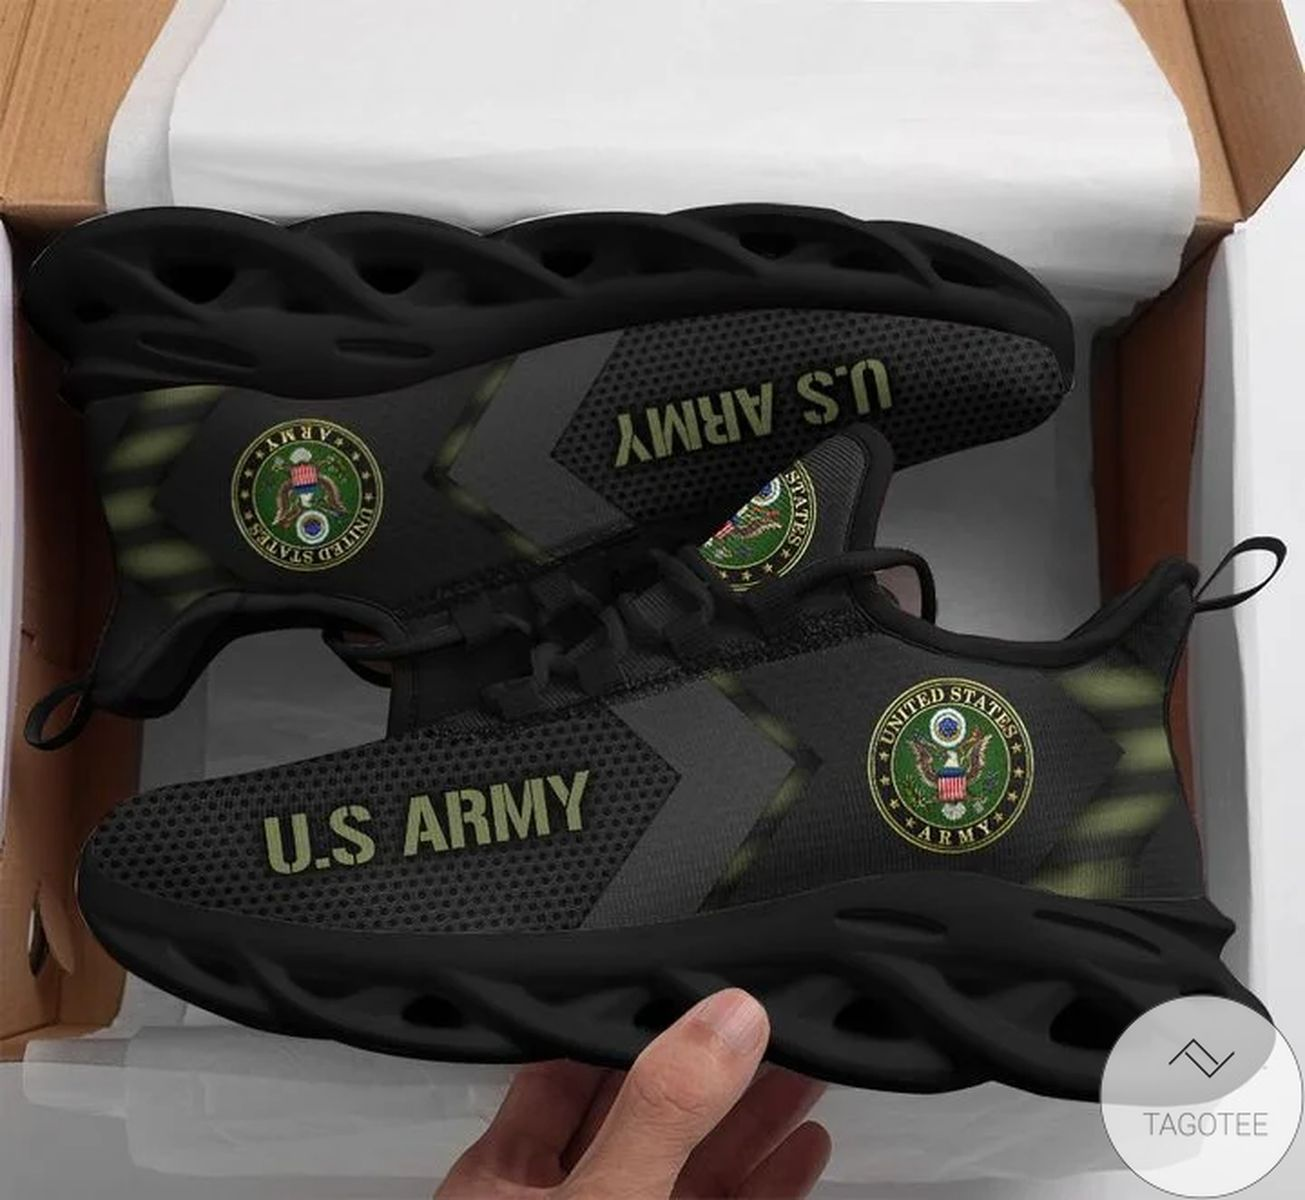 US Army Sneaker Max Soul Shoes